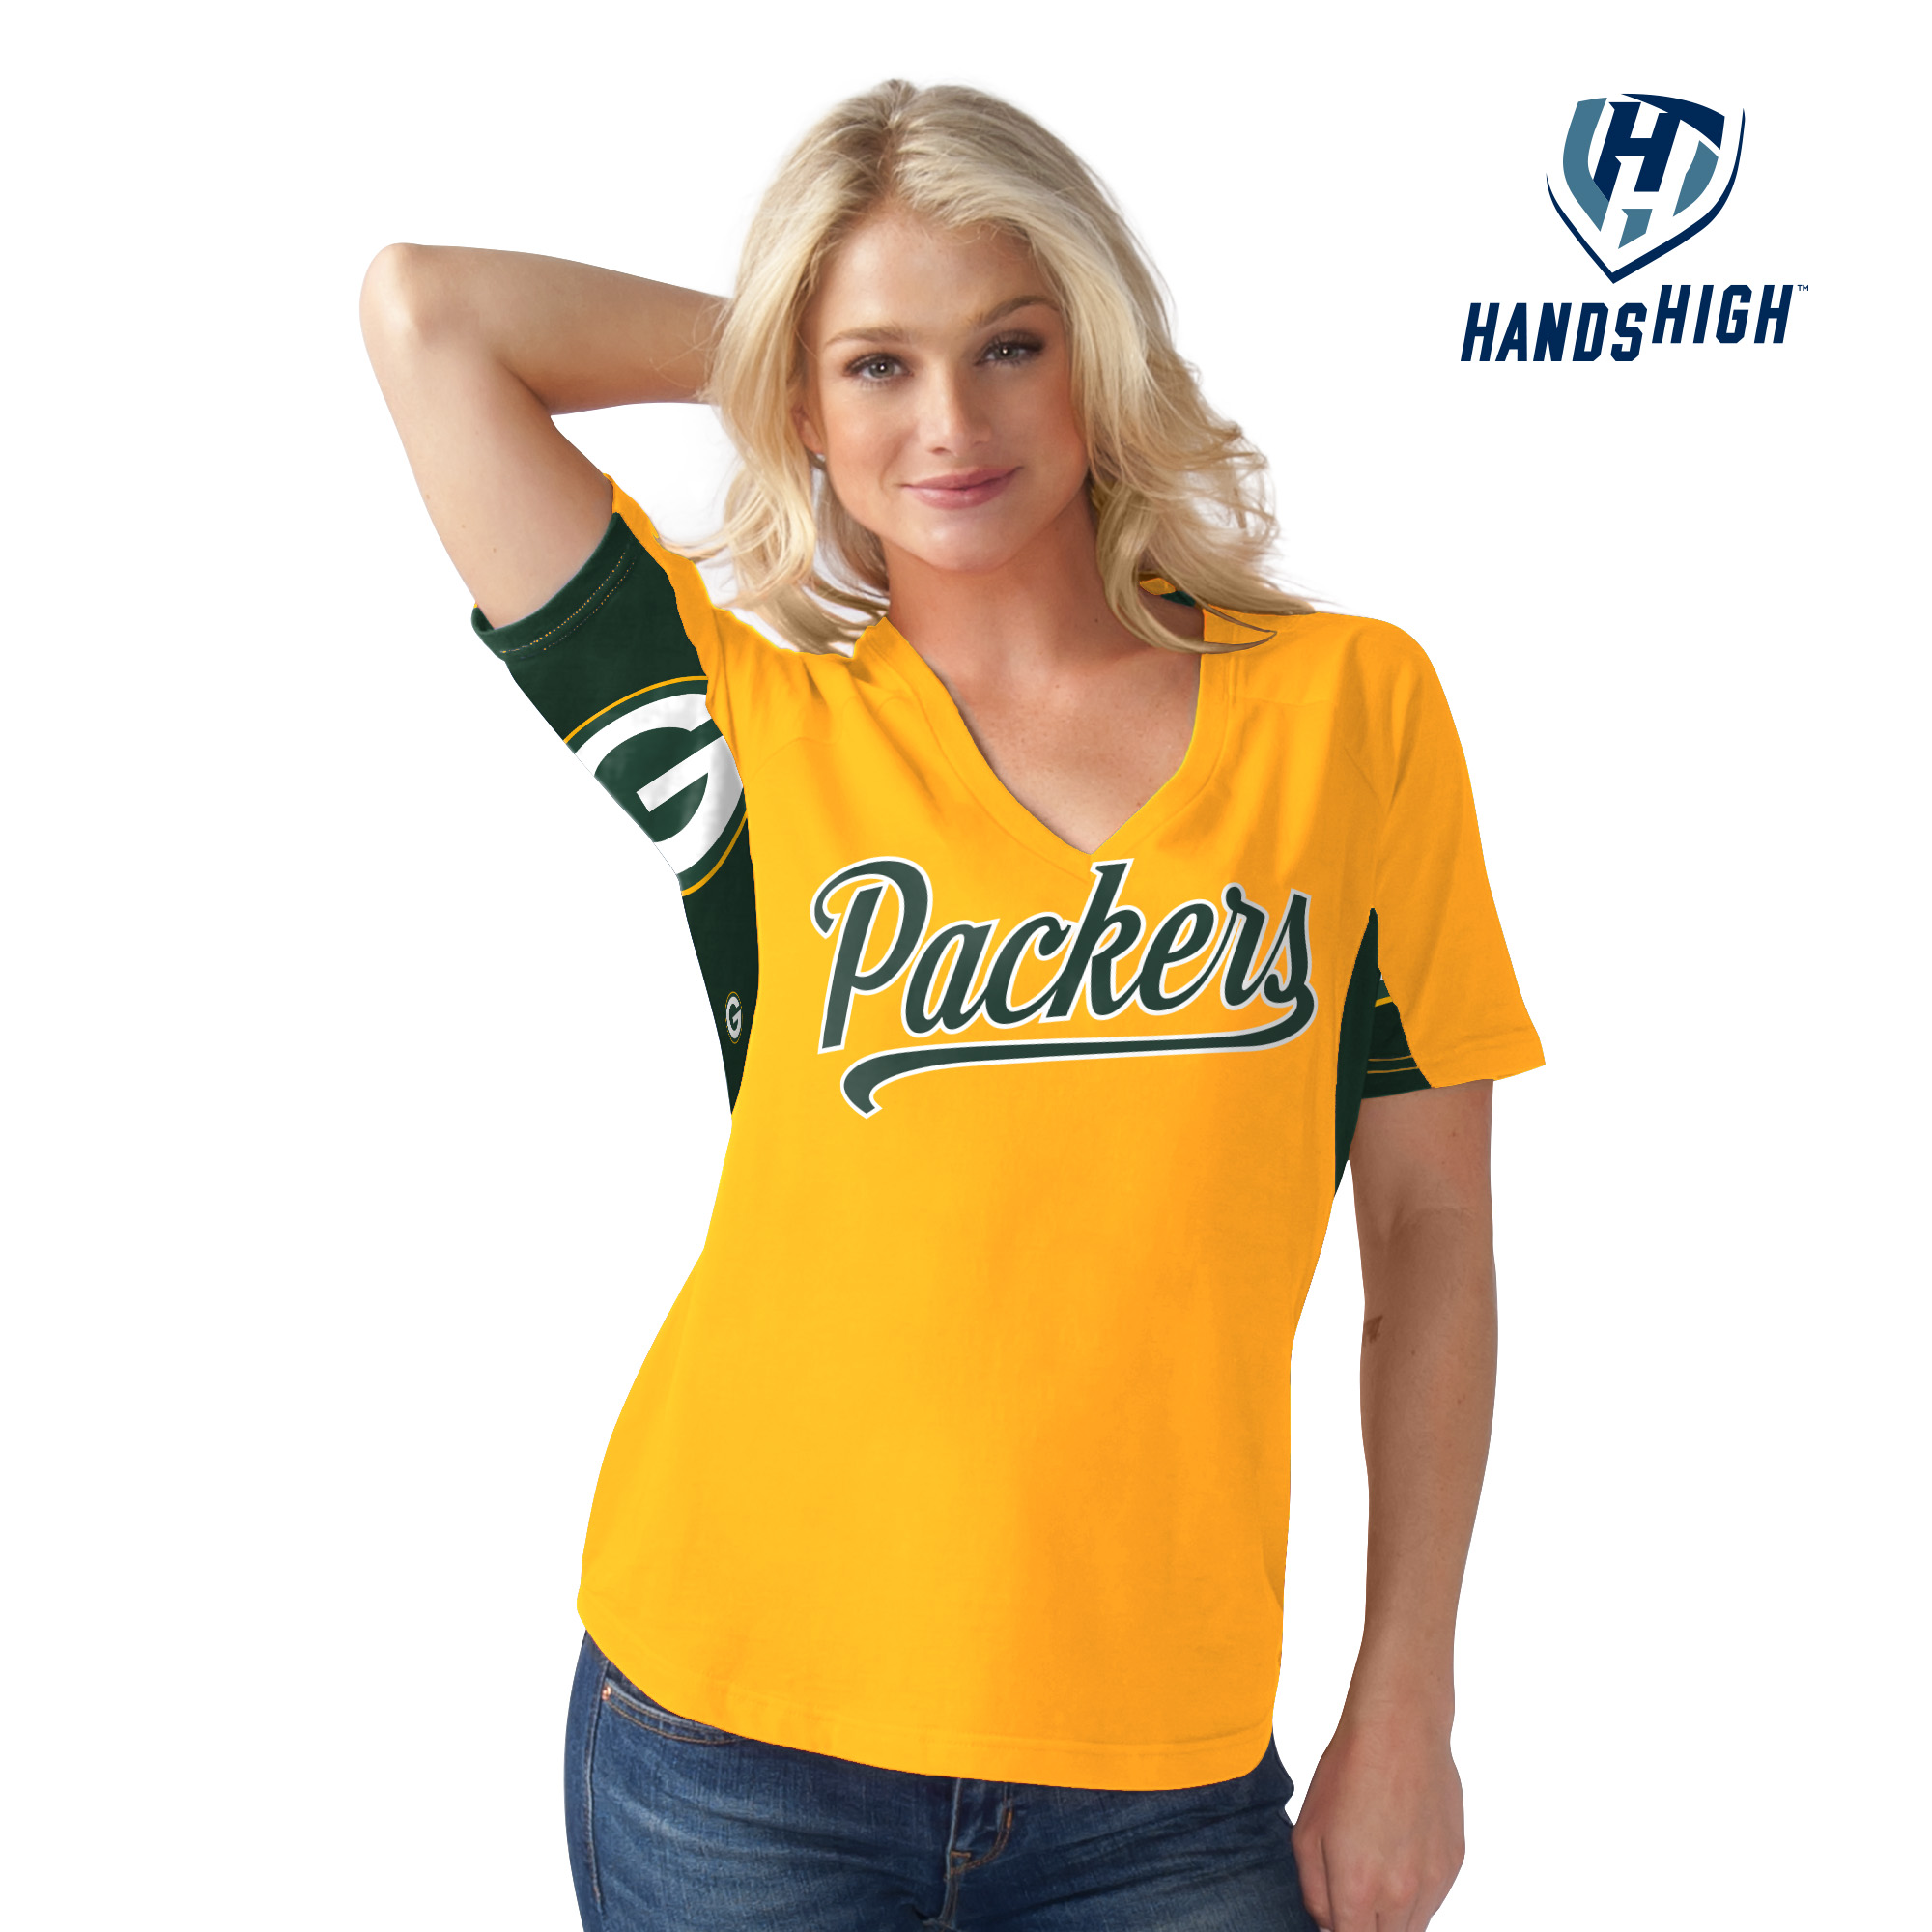 G-III Green Bay Packers Hands High On The Board Women's Shirt by G-III